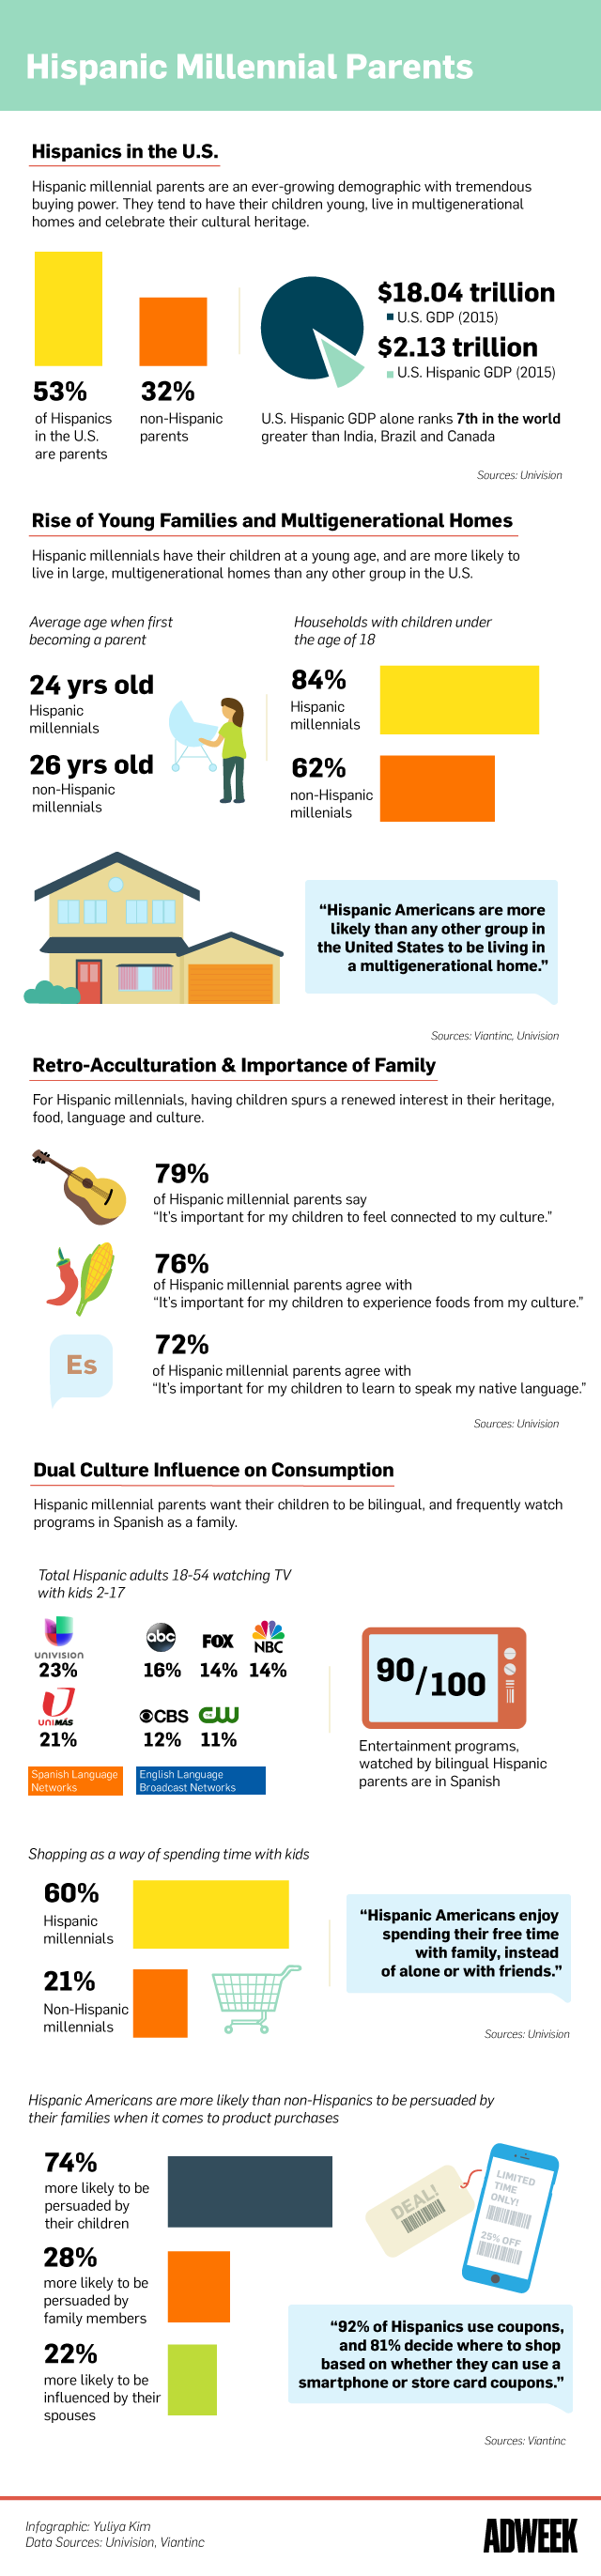 Cultural Nuances of Hispanic Millennial Parents: What Marketers' Must Know - Infographic